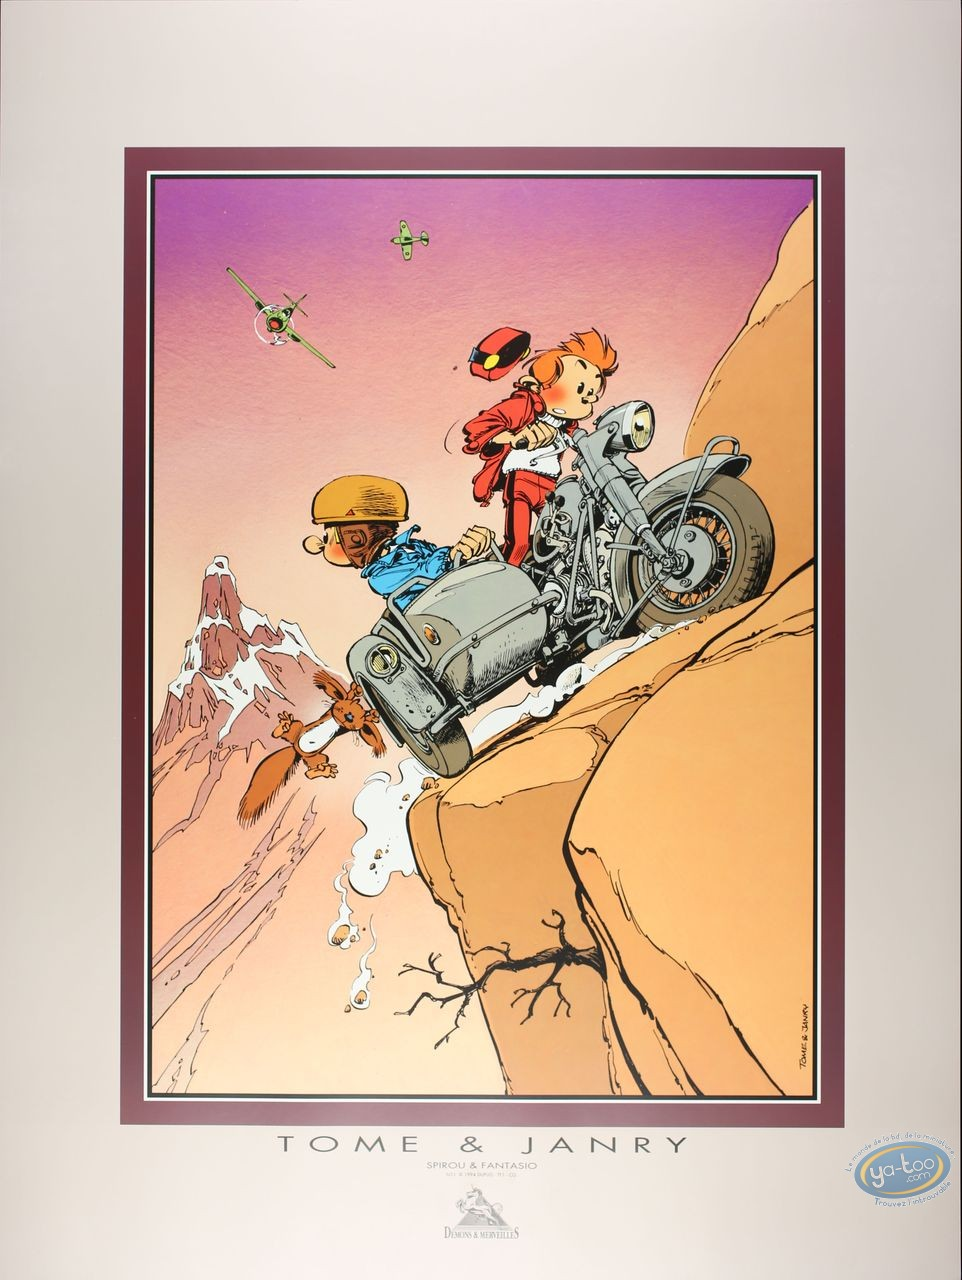 Affiche Offset, Spirou et Fantasio : Side-car